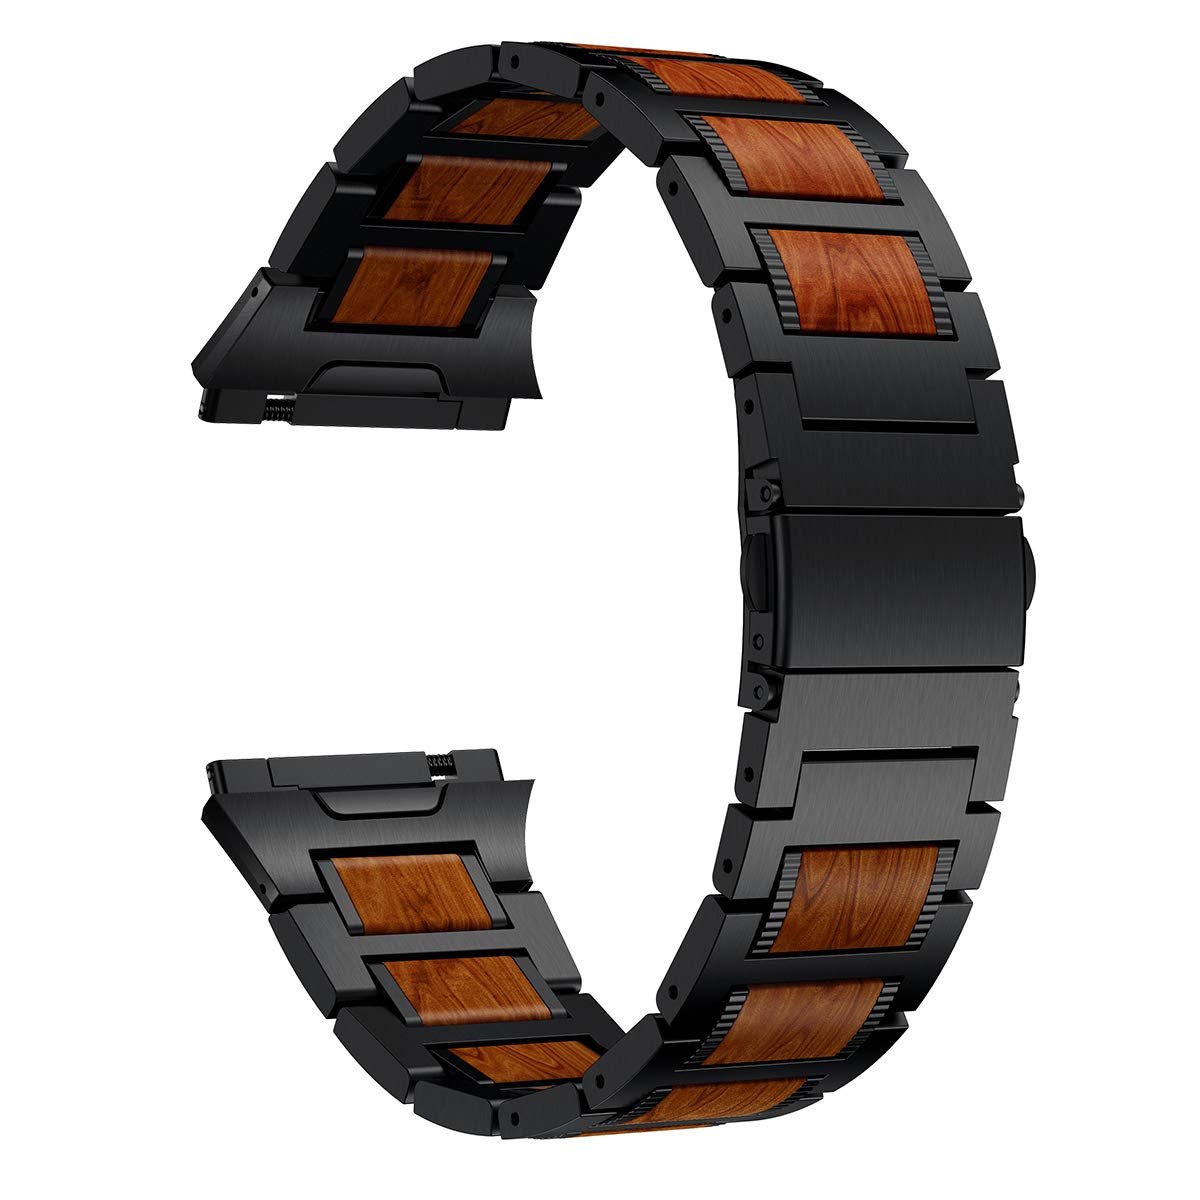 LDFAS Wood Band Compatible for Fitbit Ionic Band, Natural Wood Red Sandalwood Black Stainless Steel Accessory Metal Watch Strap Compatible for Fitbit Ionic Smartwatch (Update) by LDFAS